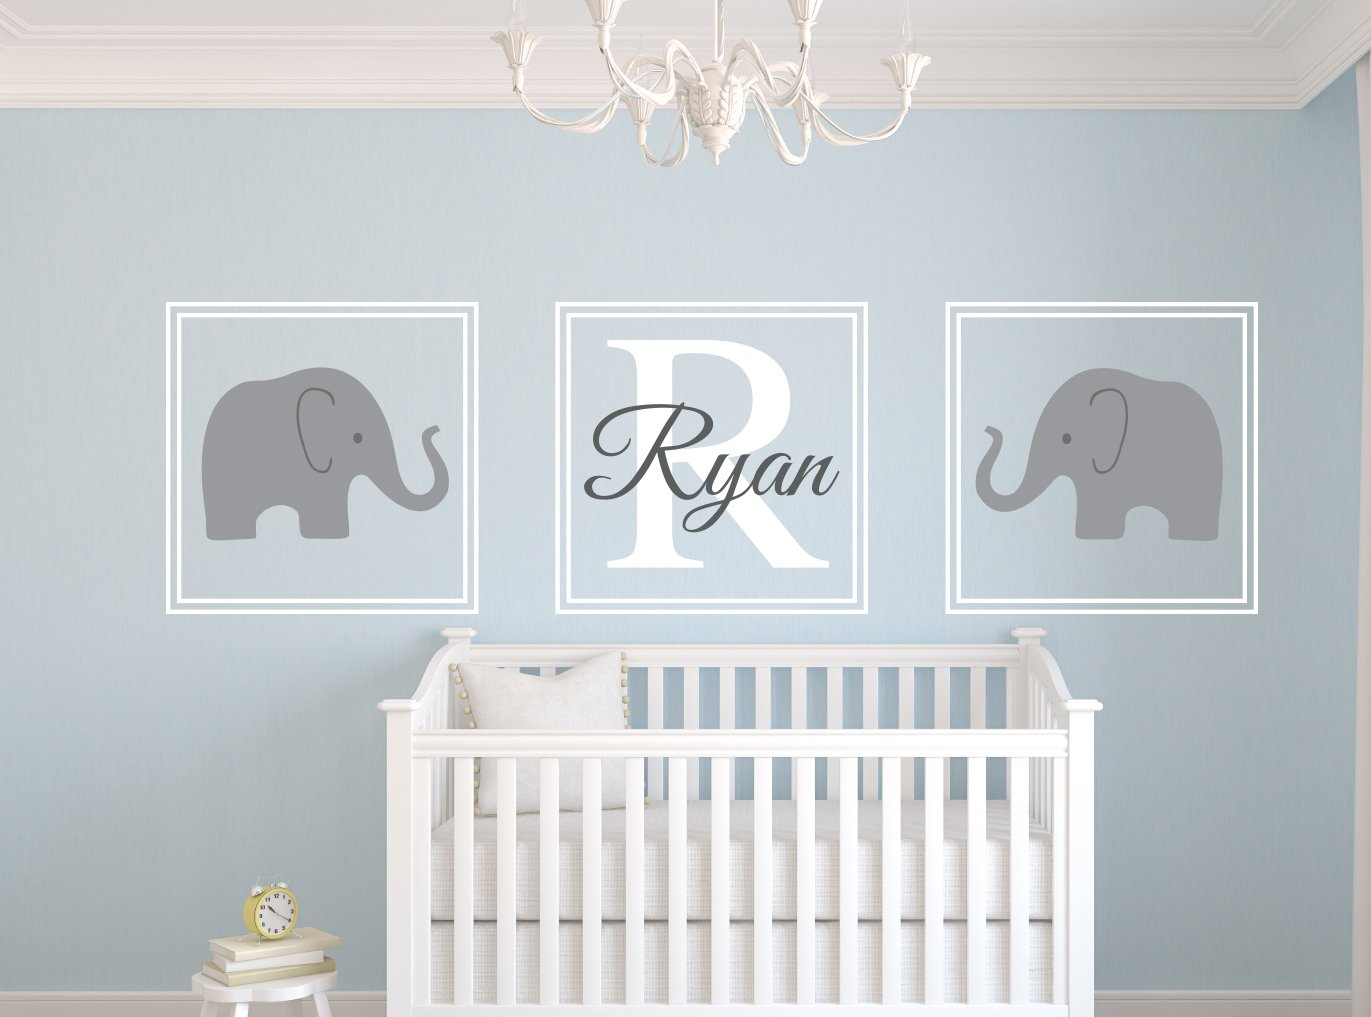 Gray crib bedding and nursery decor for Baby boy mural ideas